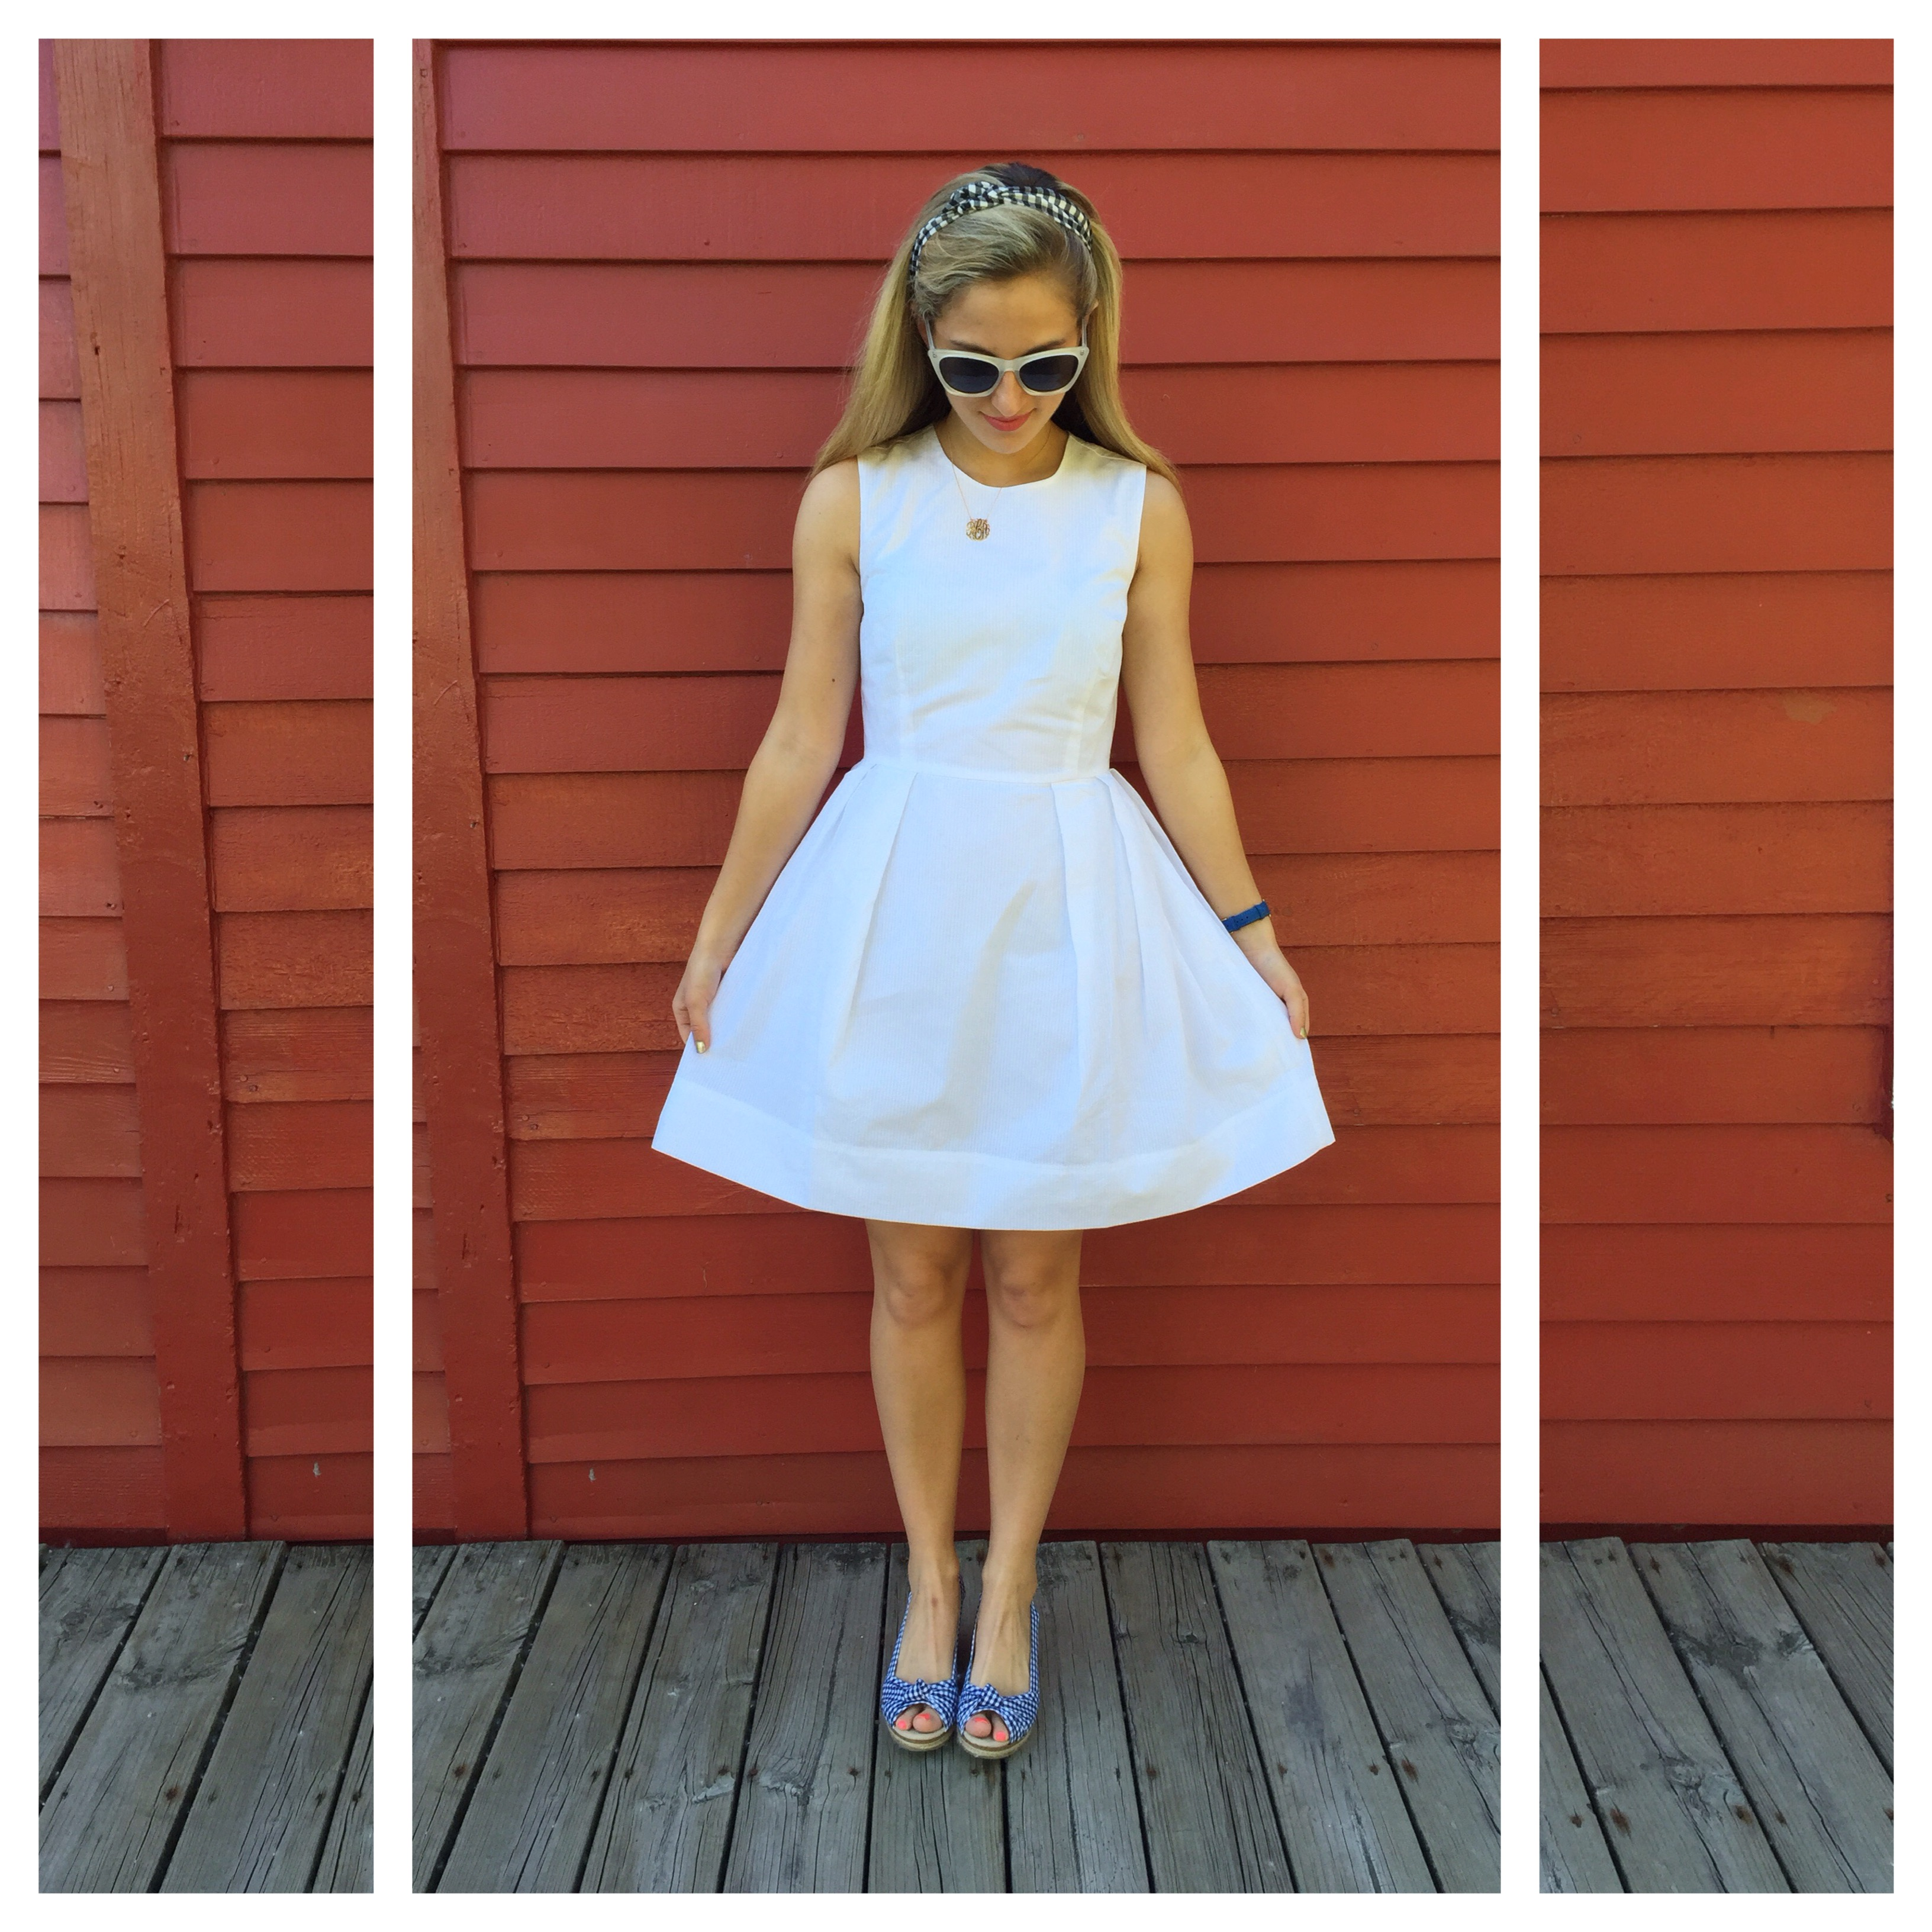 Iphone wallpaper the dress decoded - When Looking For A White Dress And Styling It Here Are My Do S And Don T S